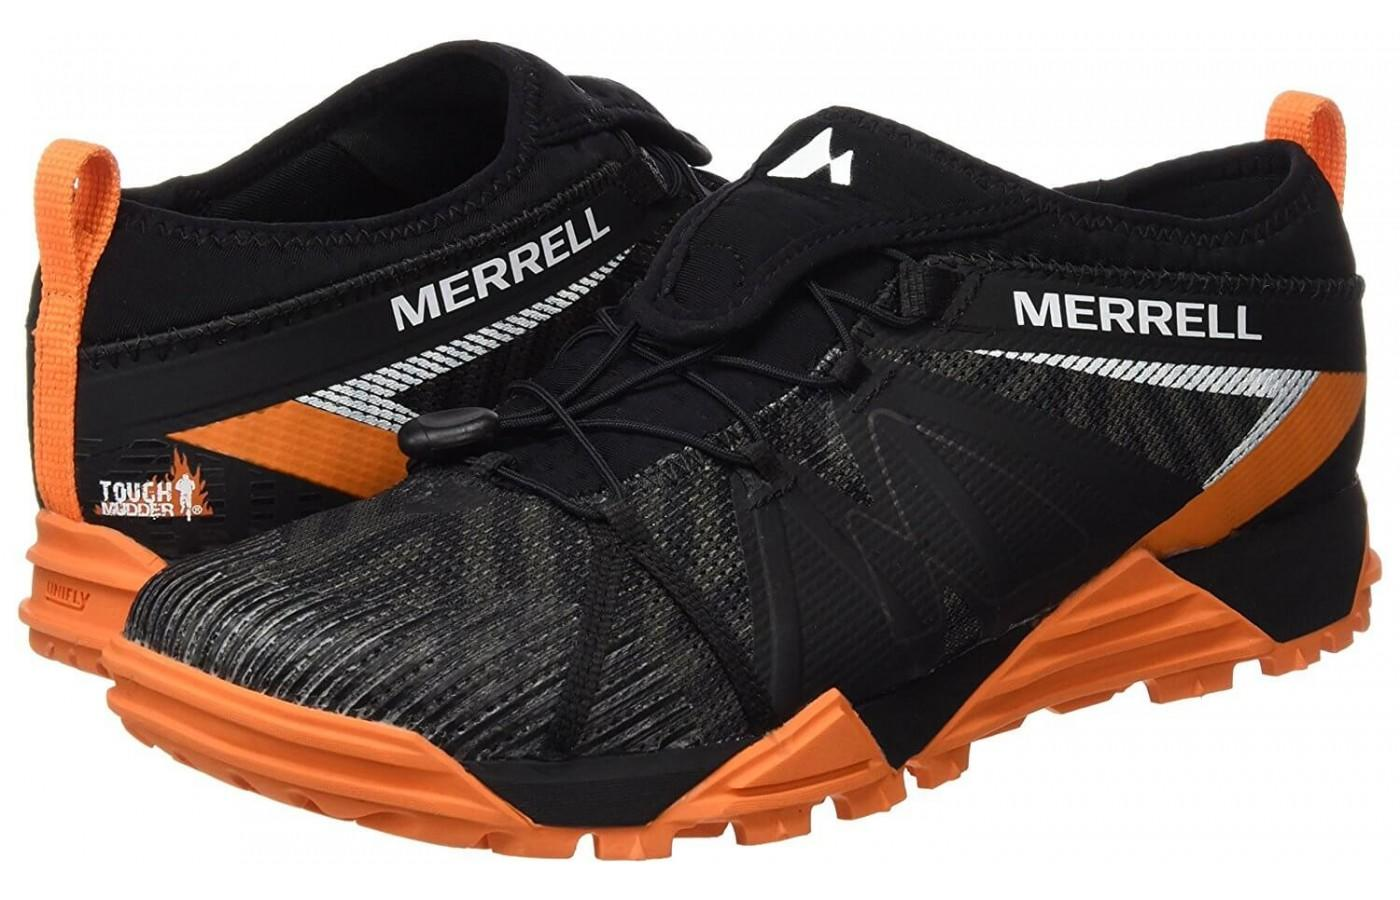 The Merrell Avalaunch Tough Mudder has a Bungee lace system for easy adjusting